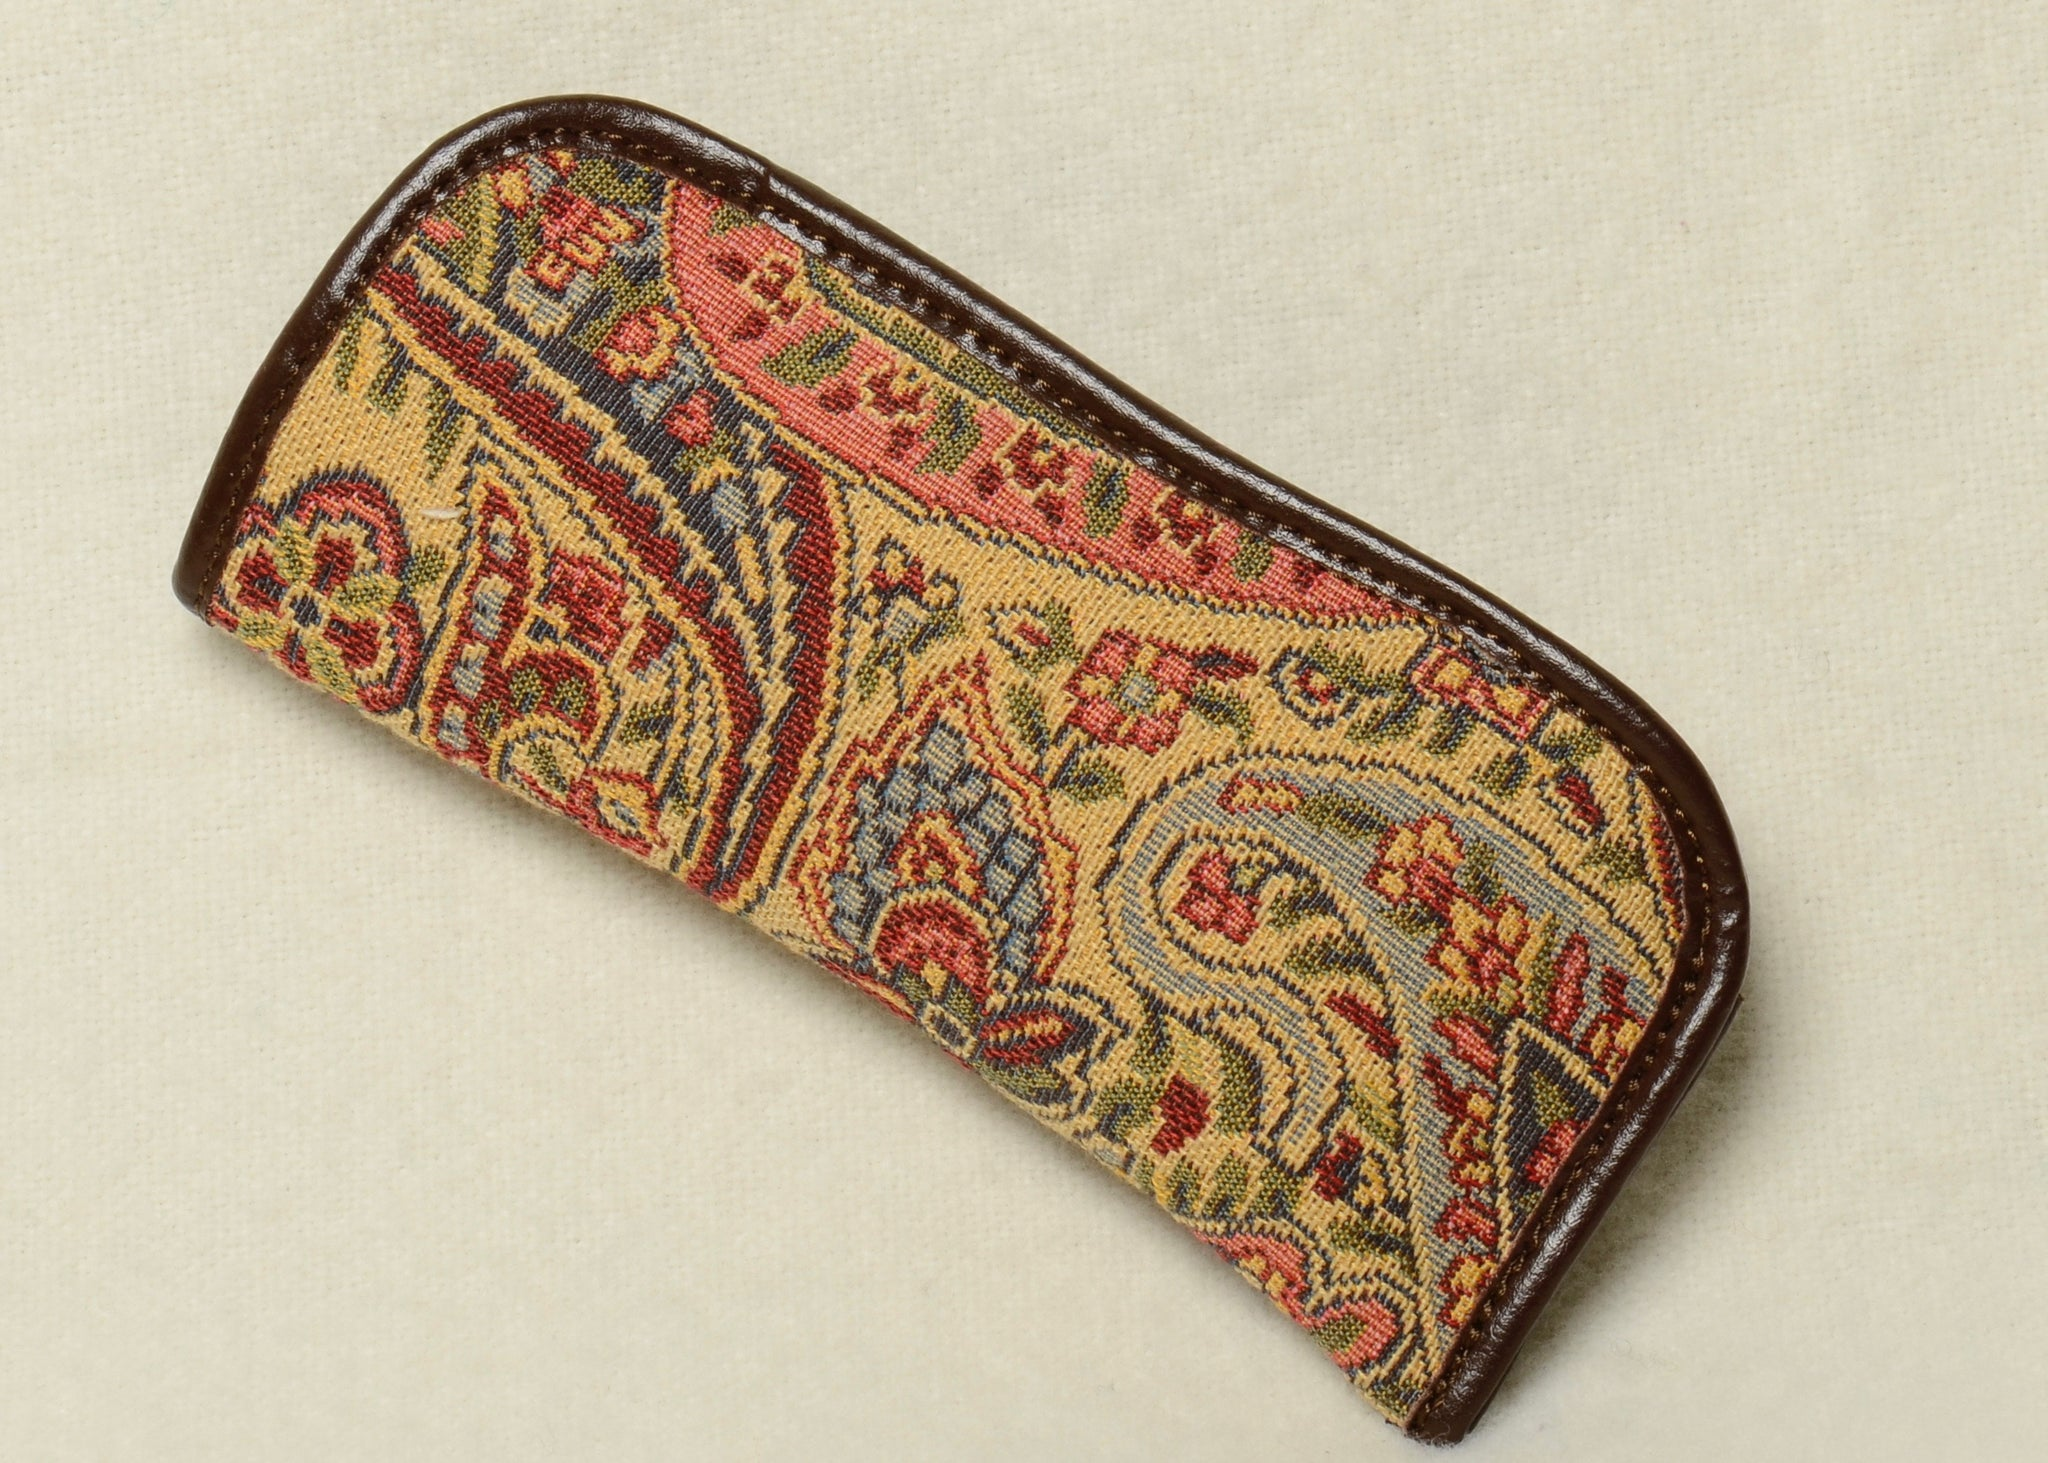 Belgian Tapestry Eyeglass Case with Leather Accents in Paisley Pattern